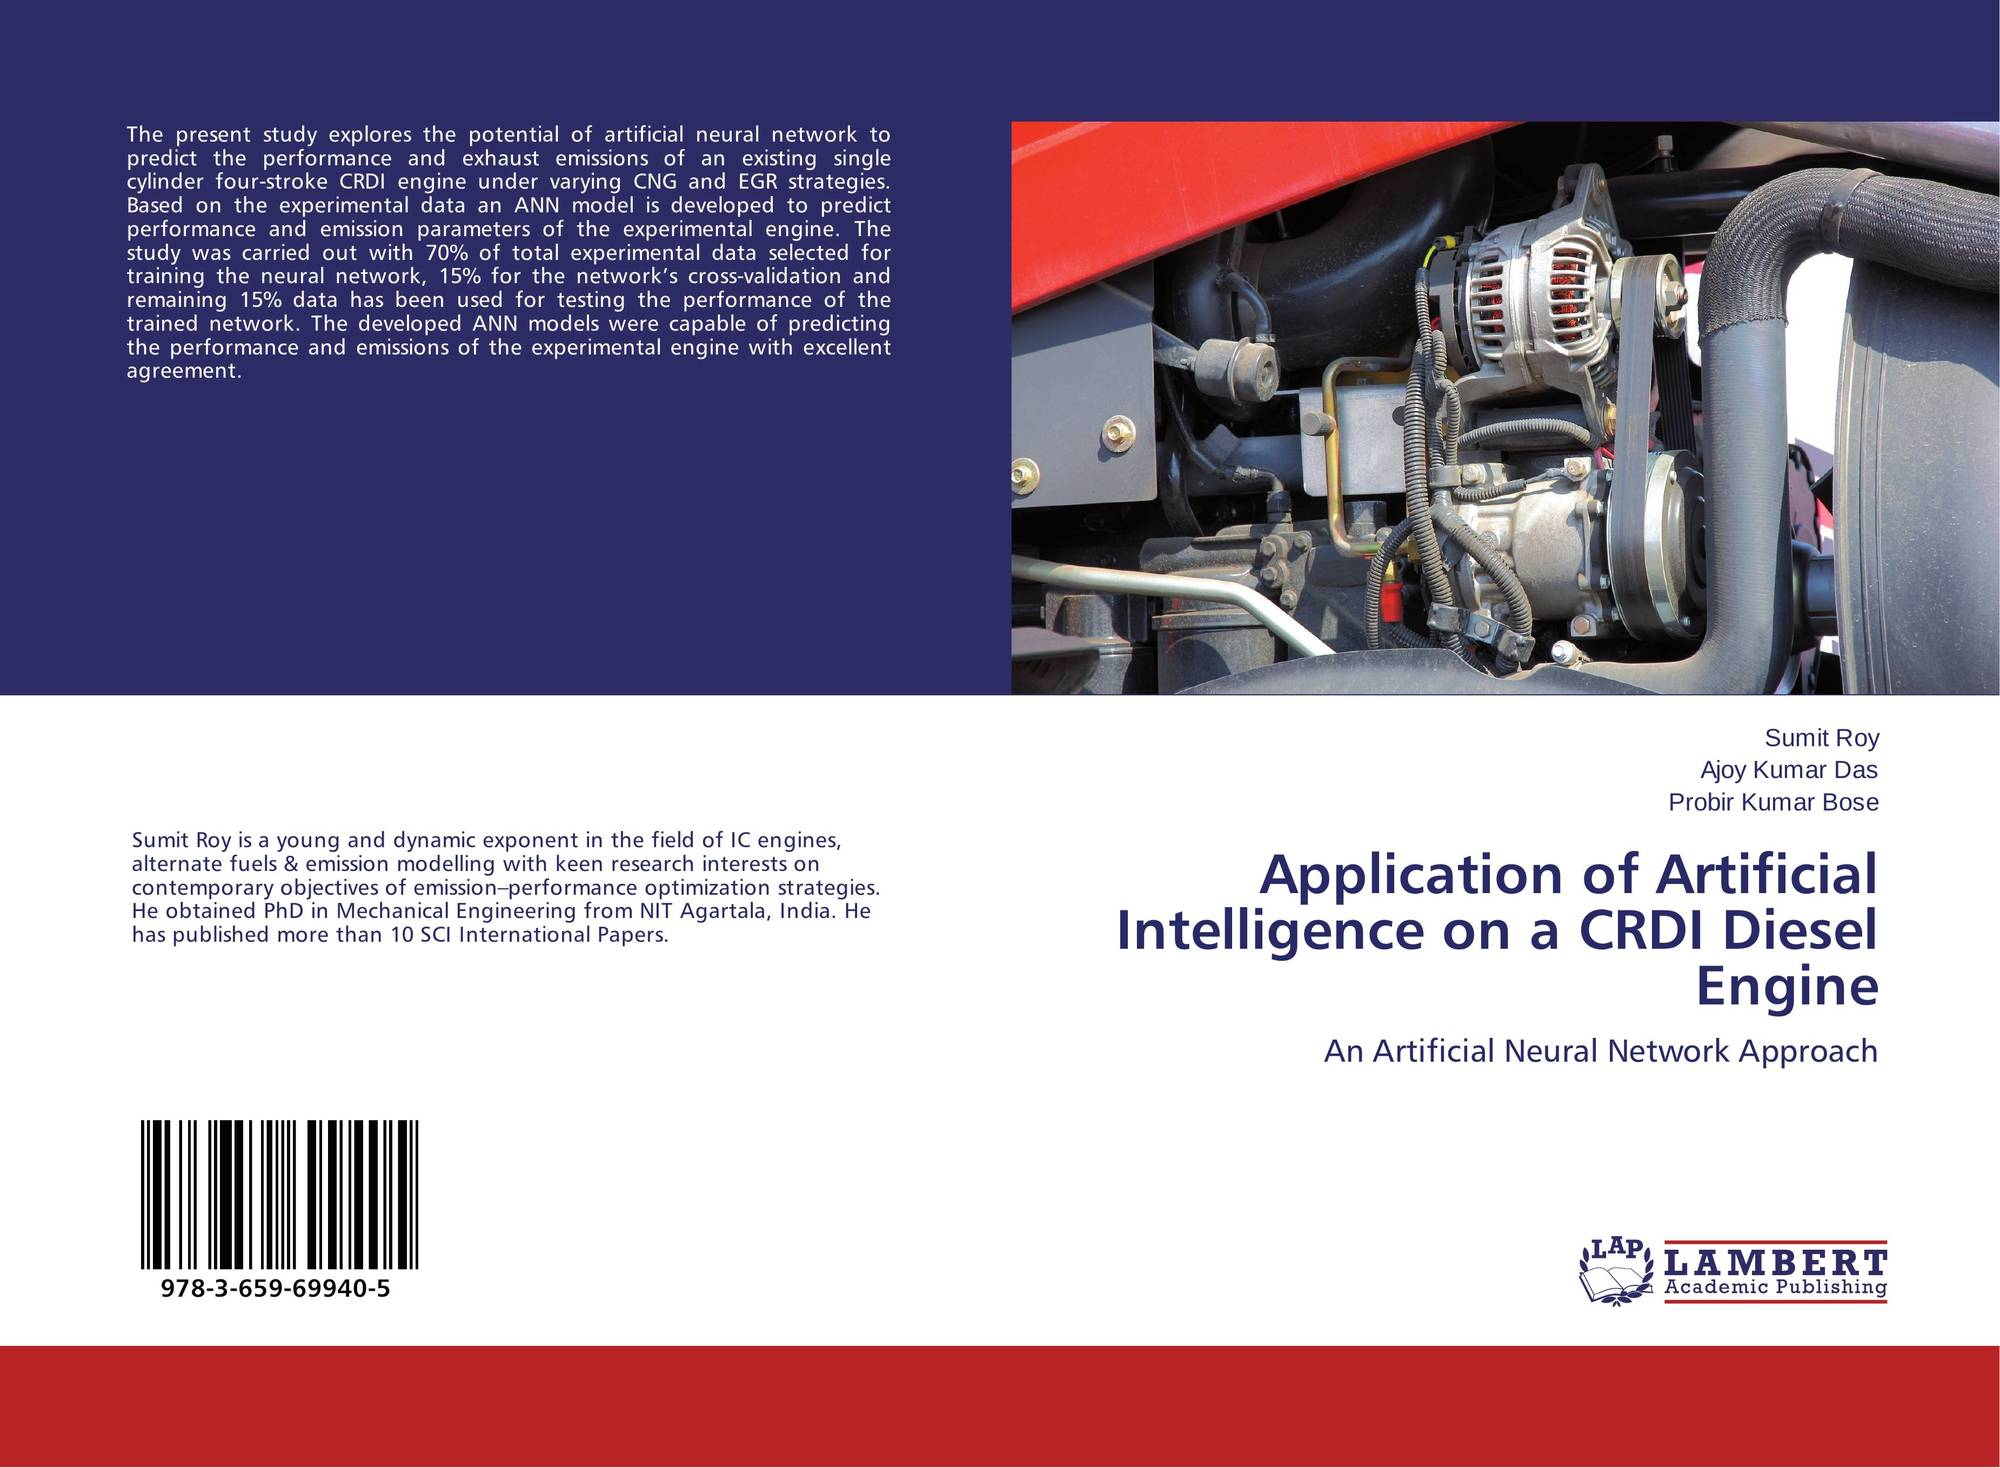 Application of Artificial Intelligence on a CRDI Diesel